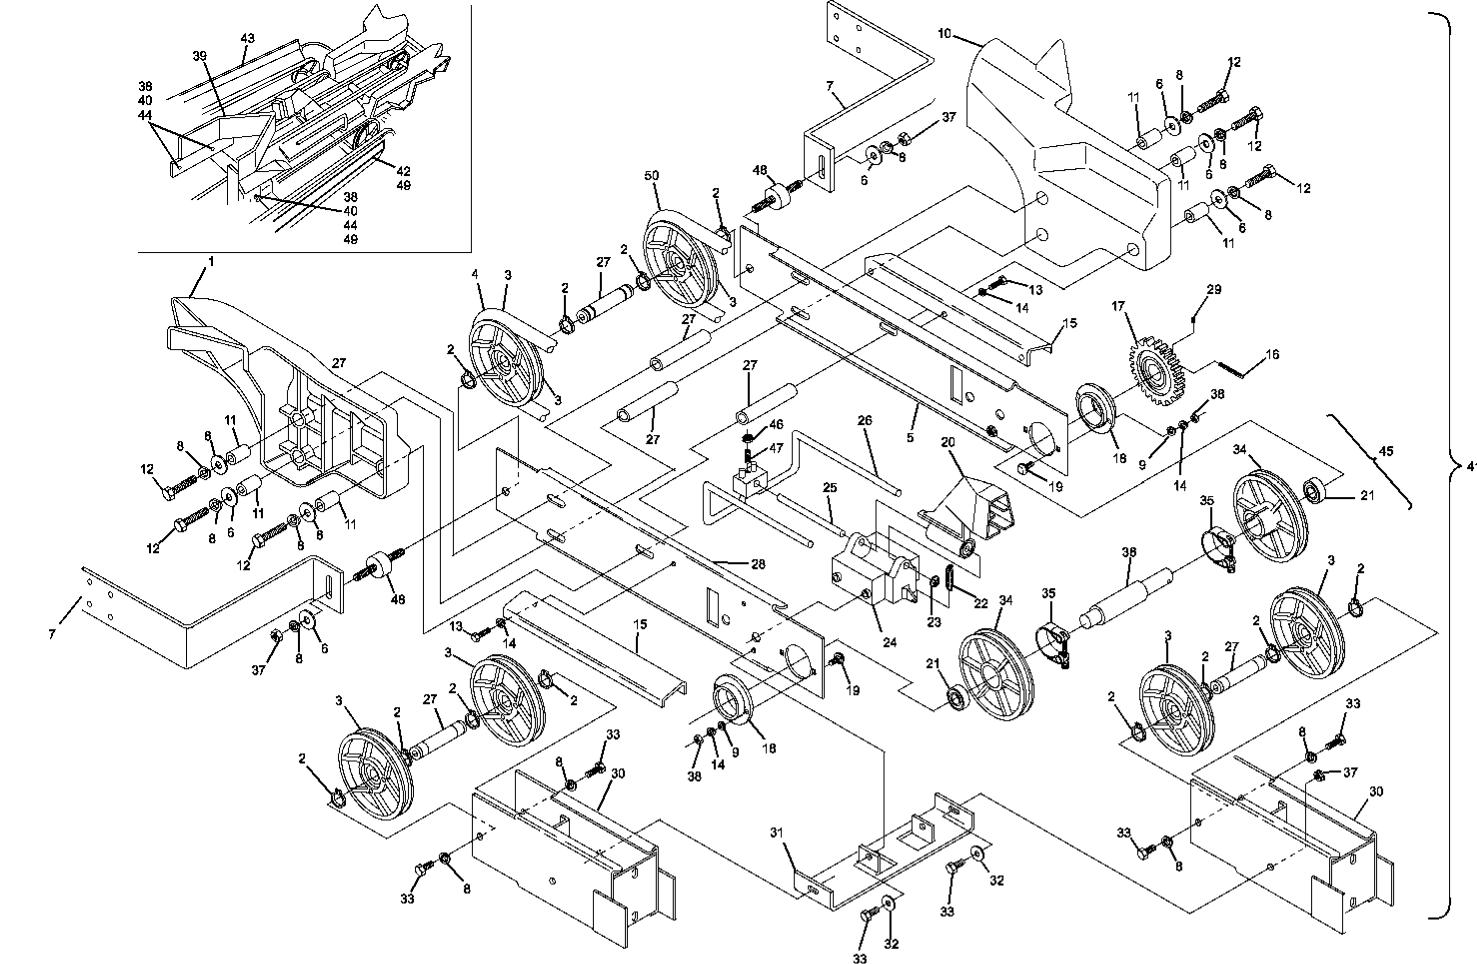 Shark Switch Assembly Short Pit Machines Series 43 and Above (Excludes Smart Shark)